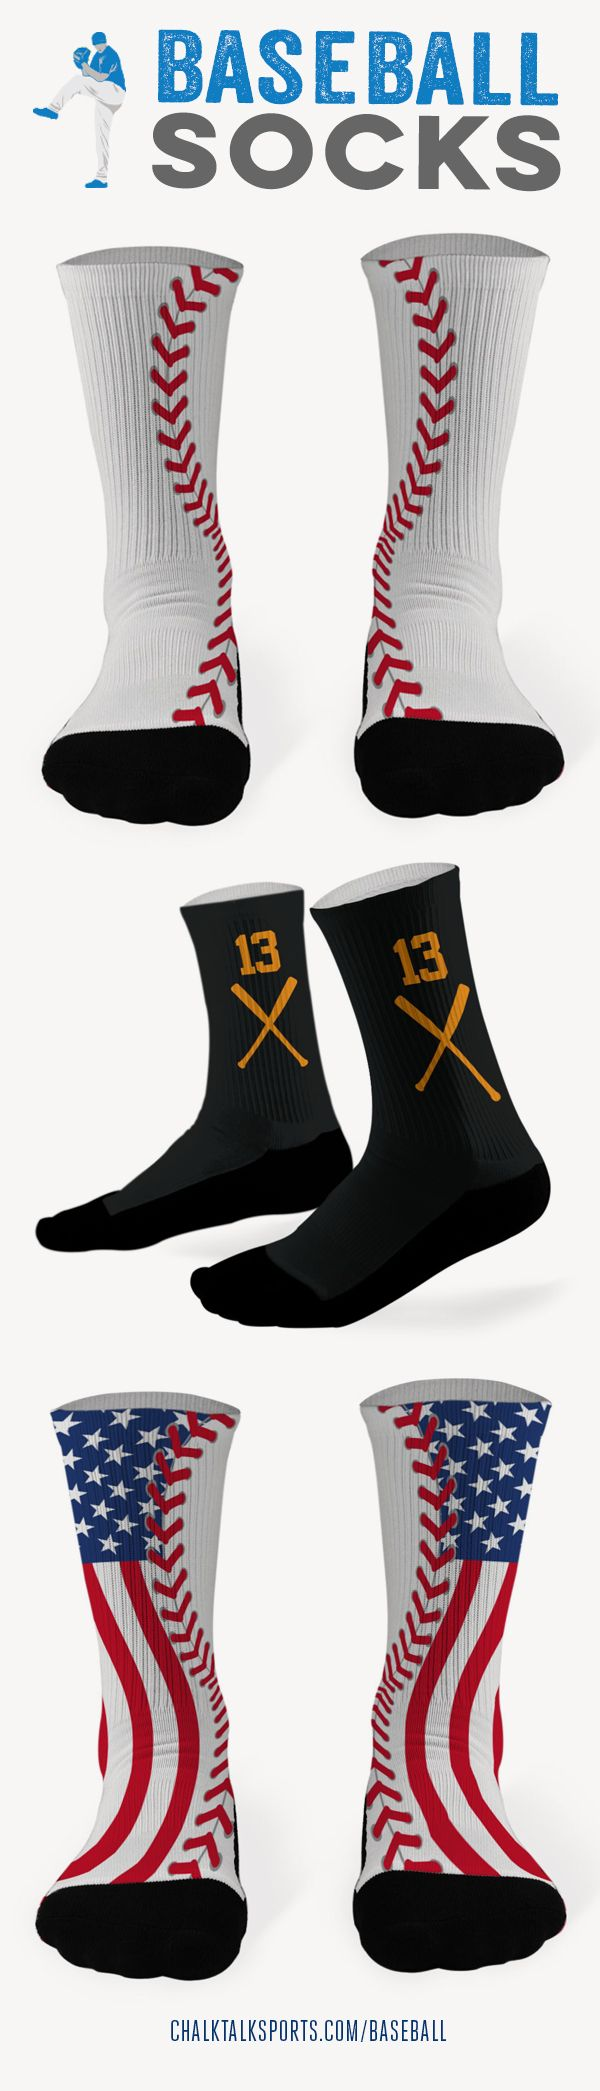 Show your love of baseball with these great baseball socks!!